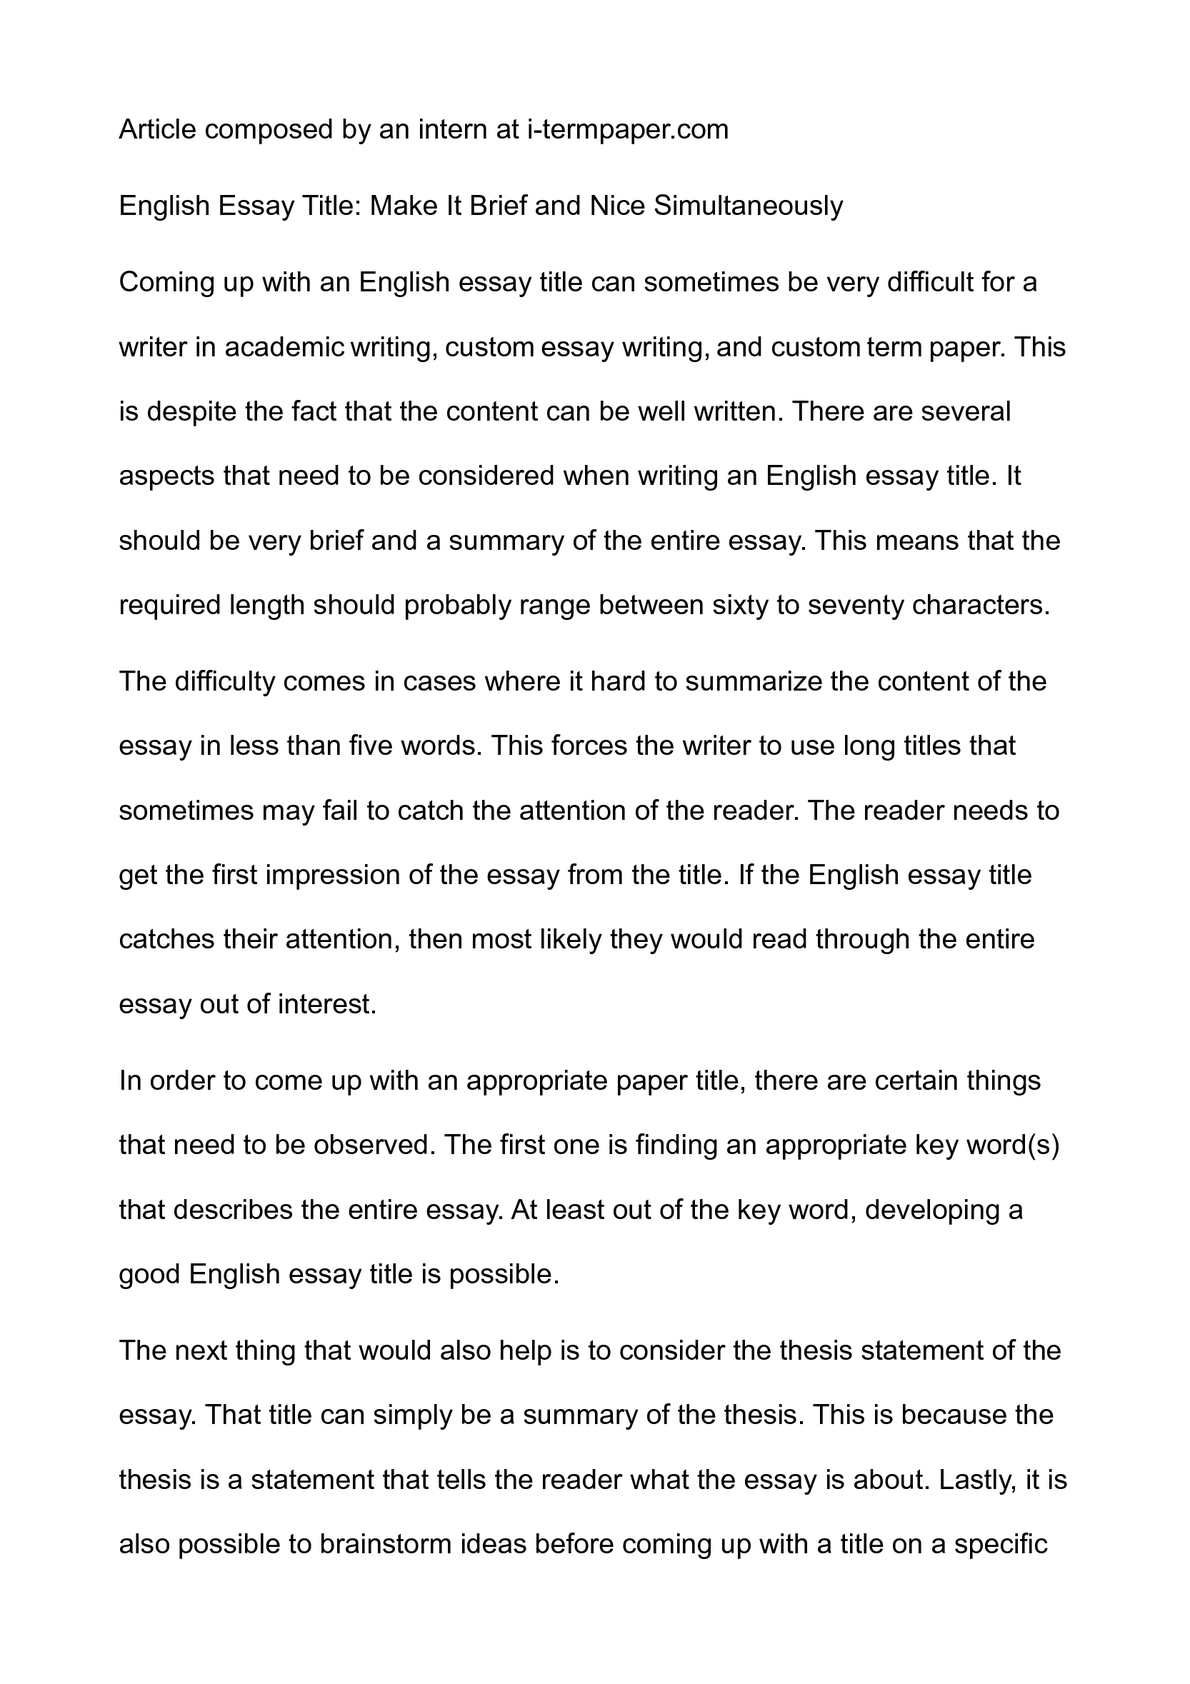 Thesis Of An Essay  Essay Proposal Outline also Cause And Effect Essay Thesis Calamo  English Essay Title Make It Brief And Nice  Thesis Statements Examples For Argumentative Essays